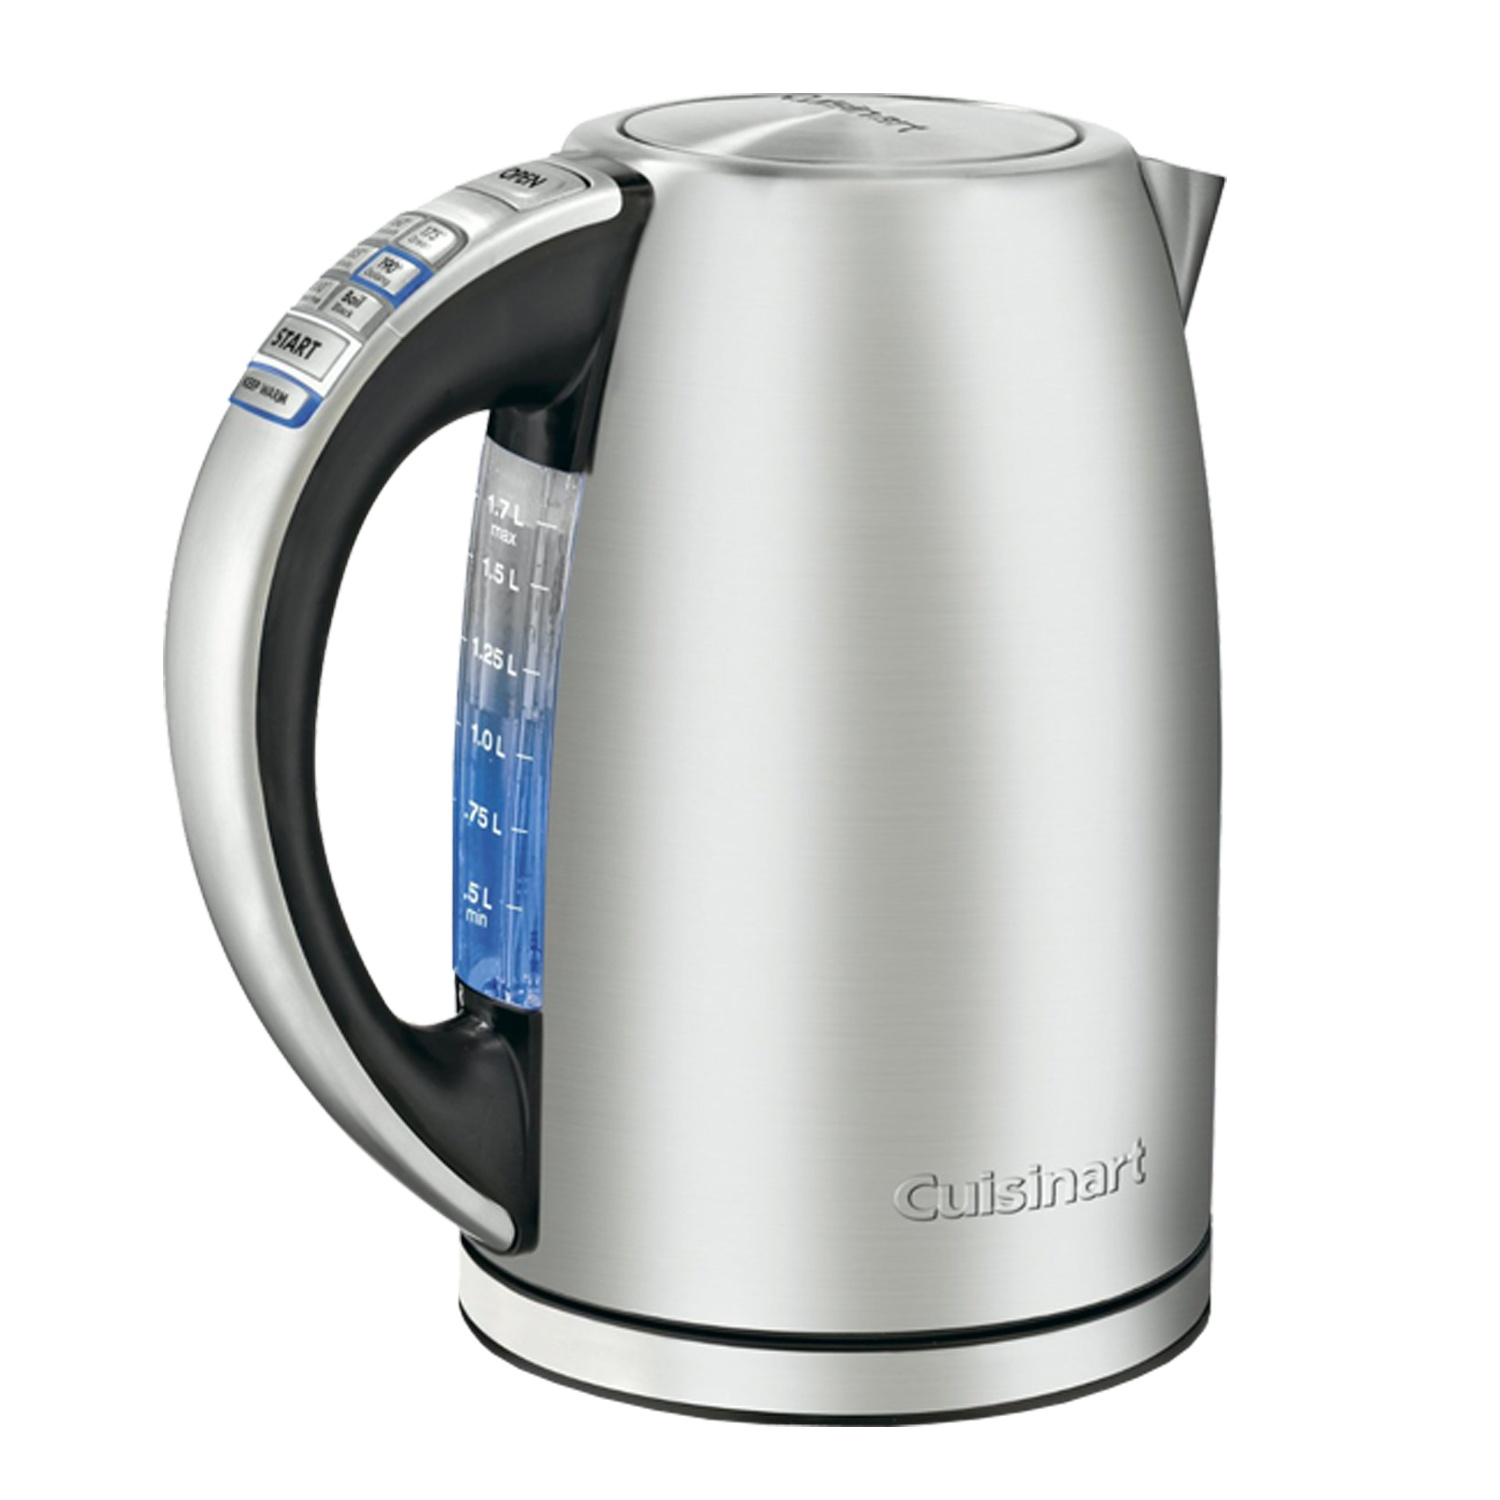 Cuisinart CPK-17 PerfecTemp 1.7-L Cordless Electric Kettle